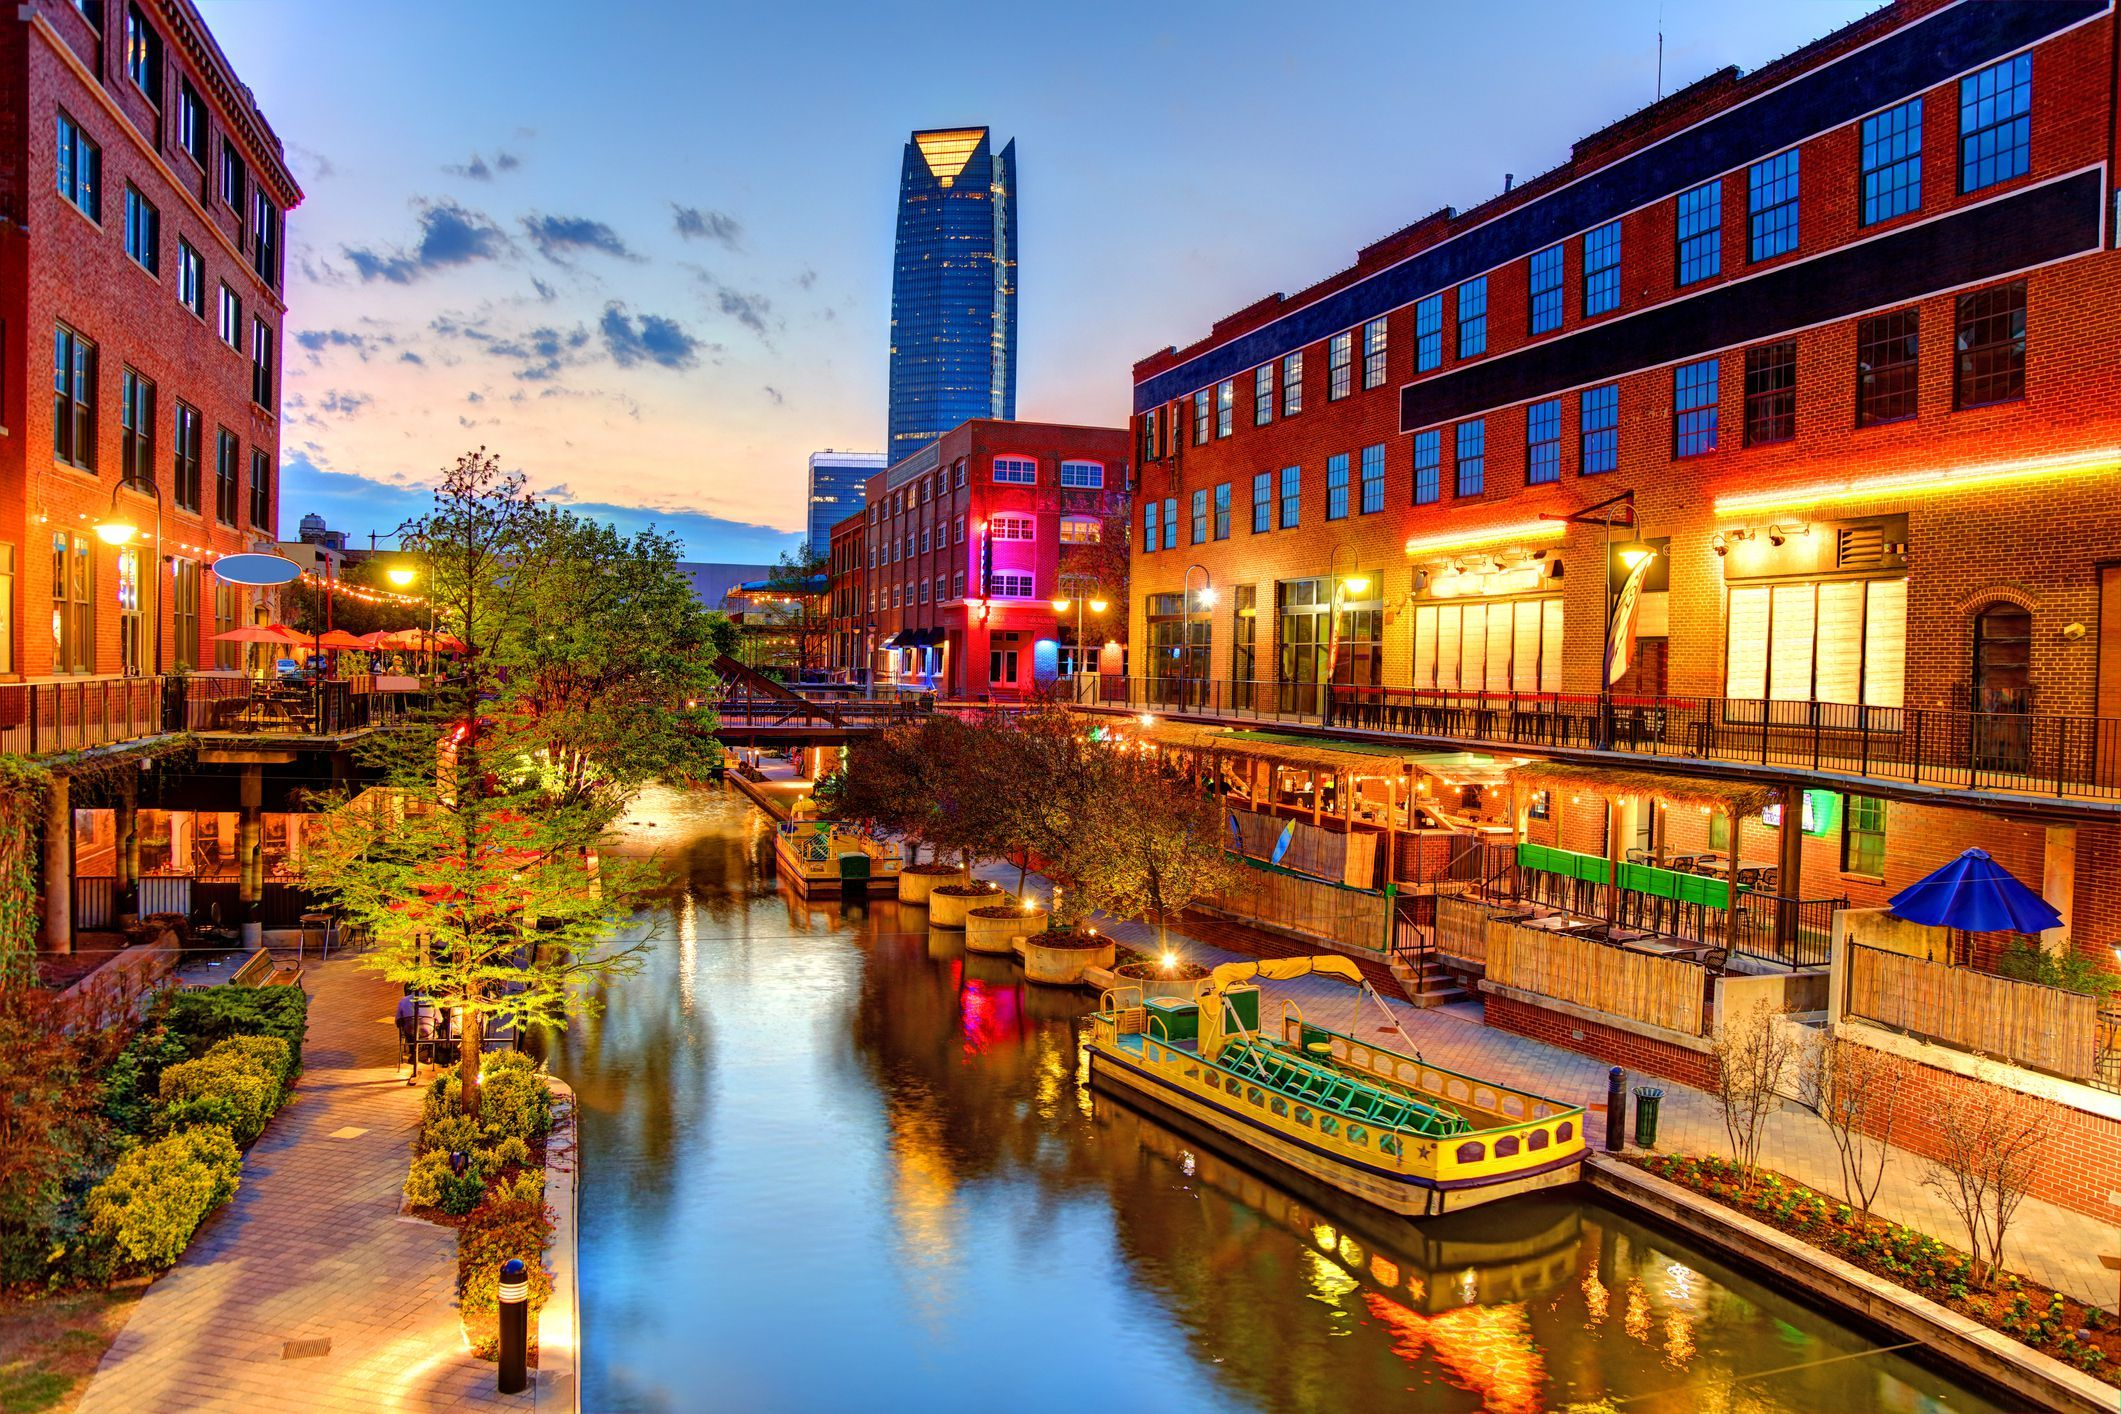 11 Best Things to Do in Bricktown, Oklahoma City